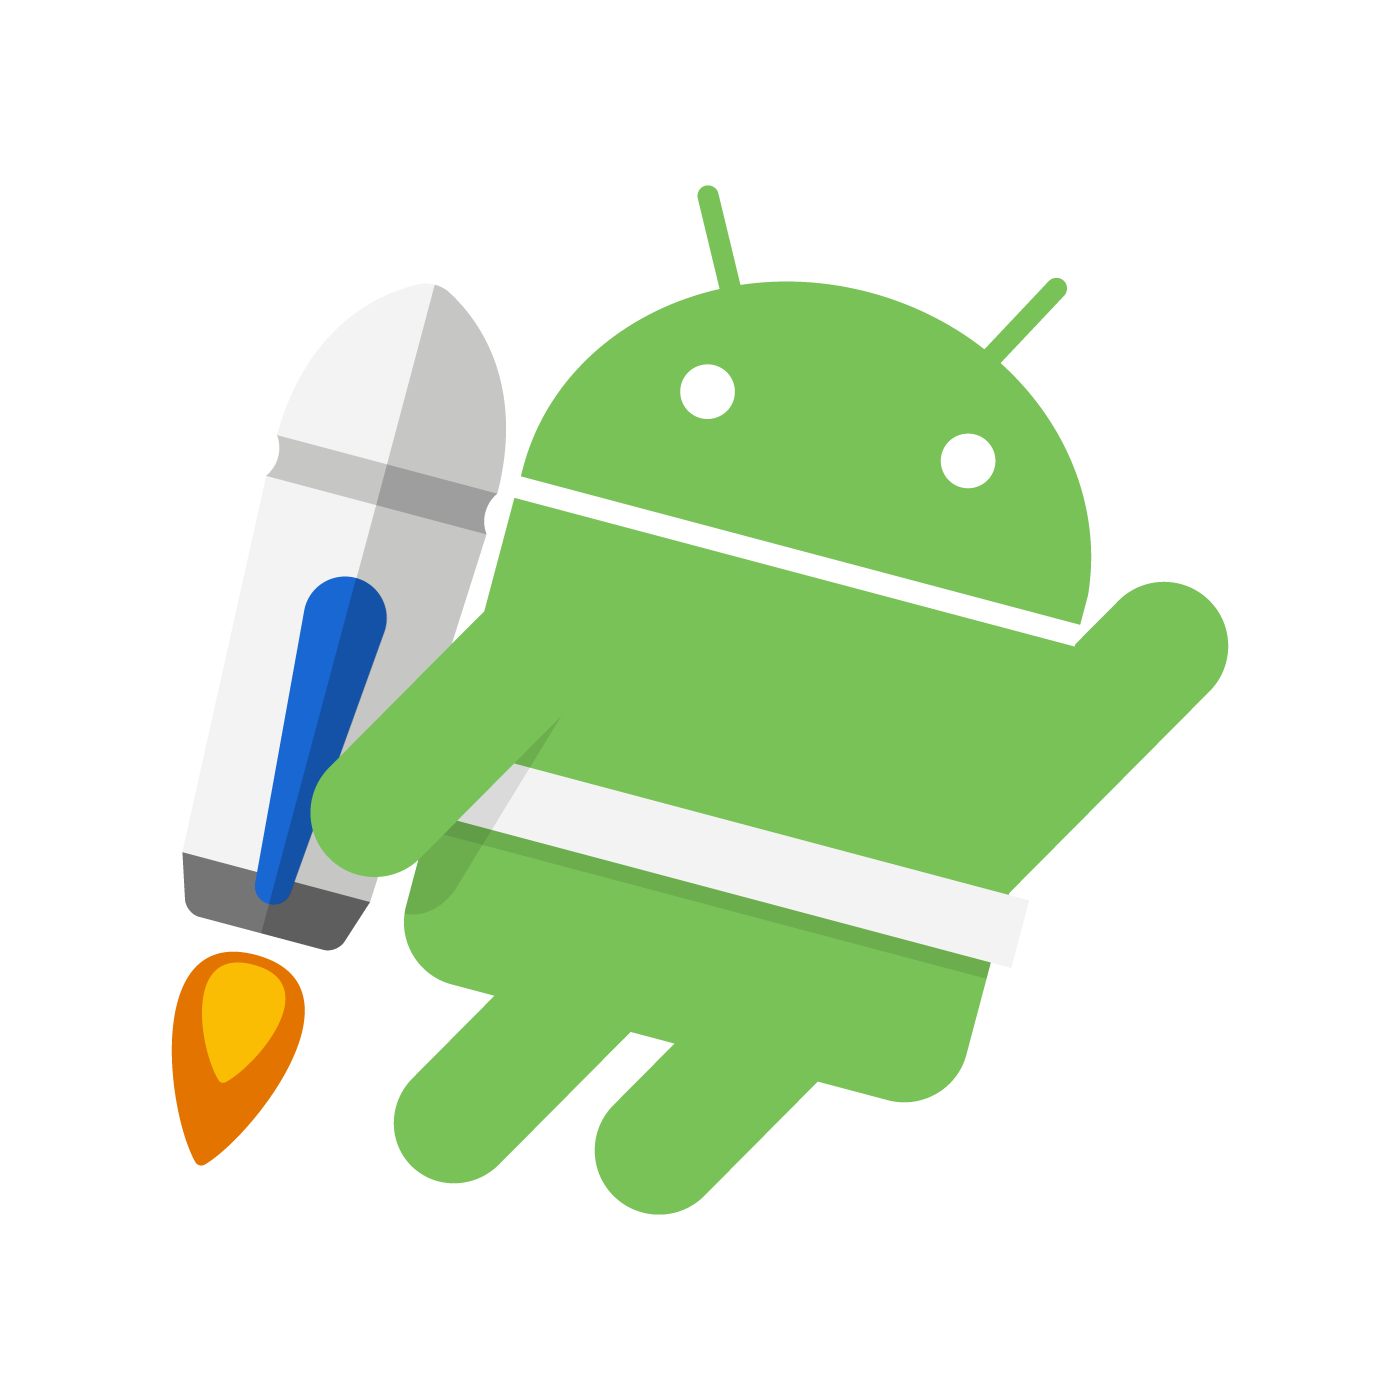 Android Developers Blog: What's New with Android Jetpack and